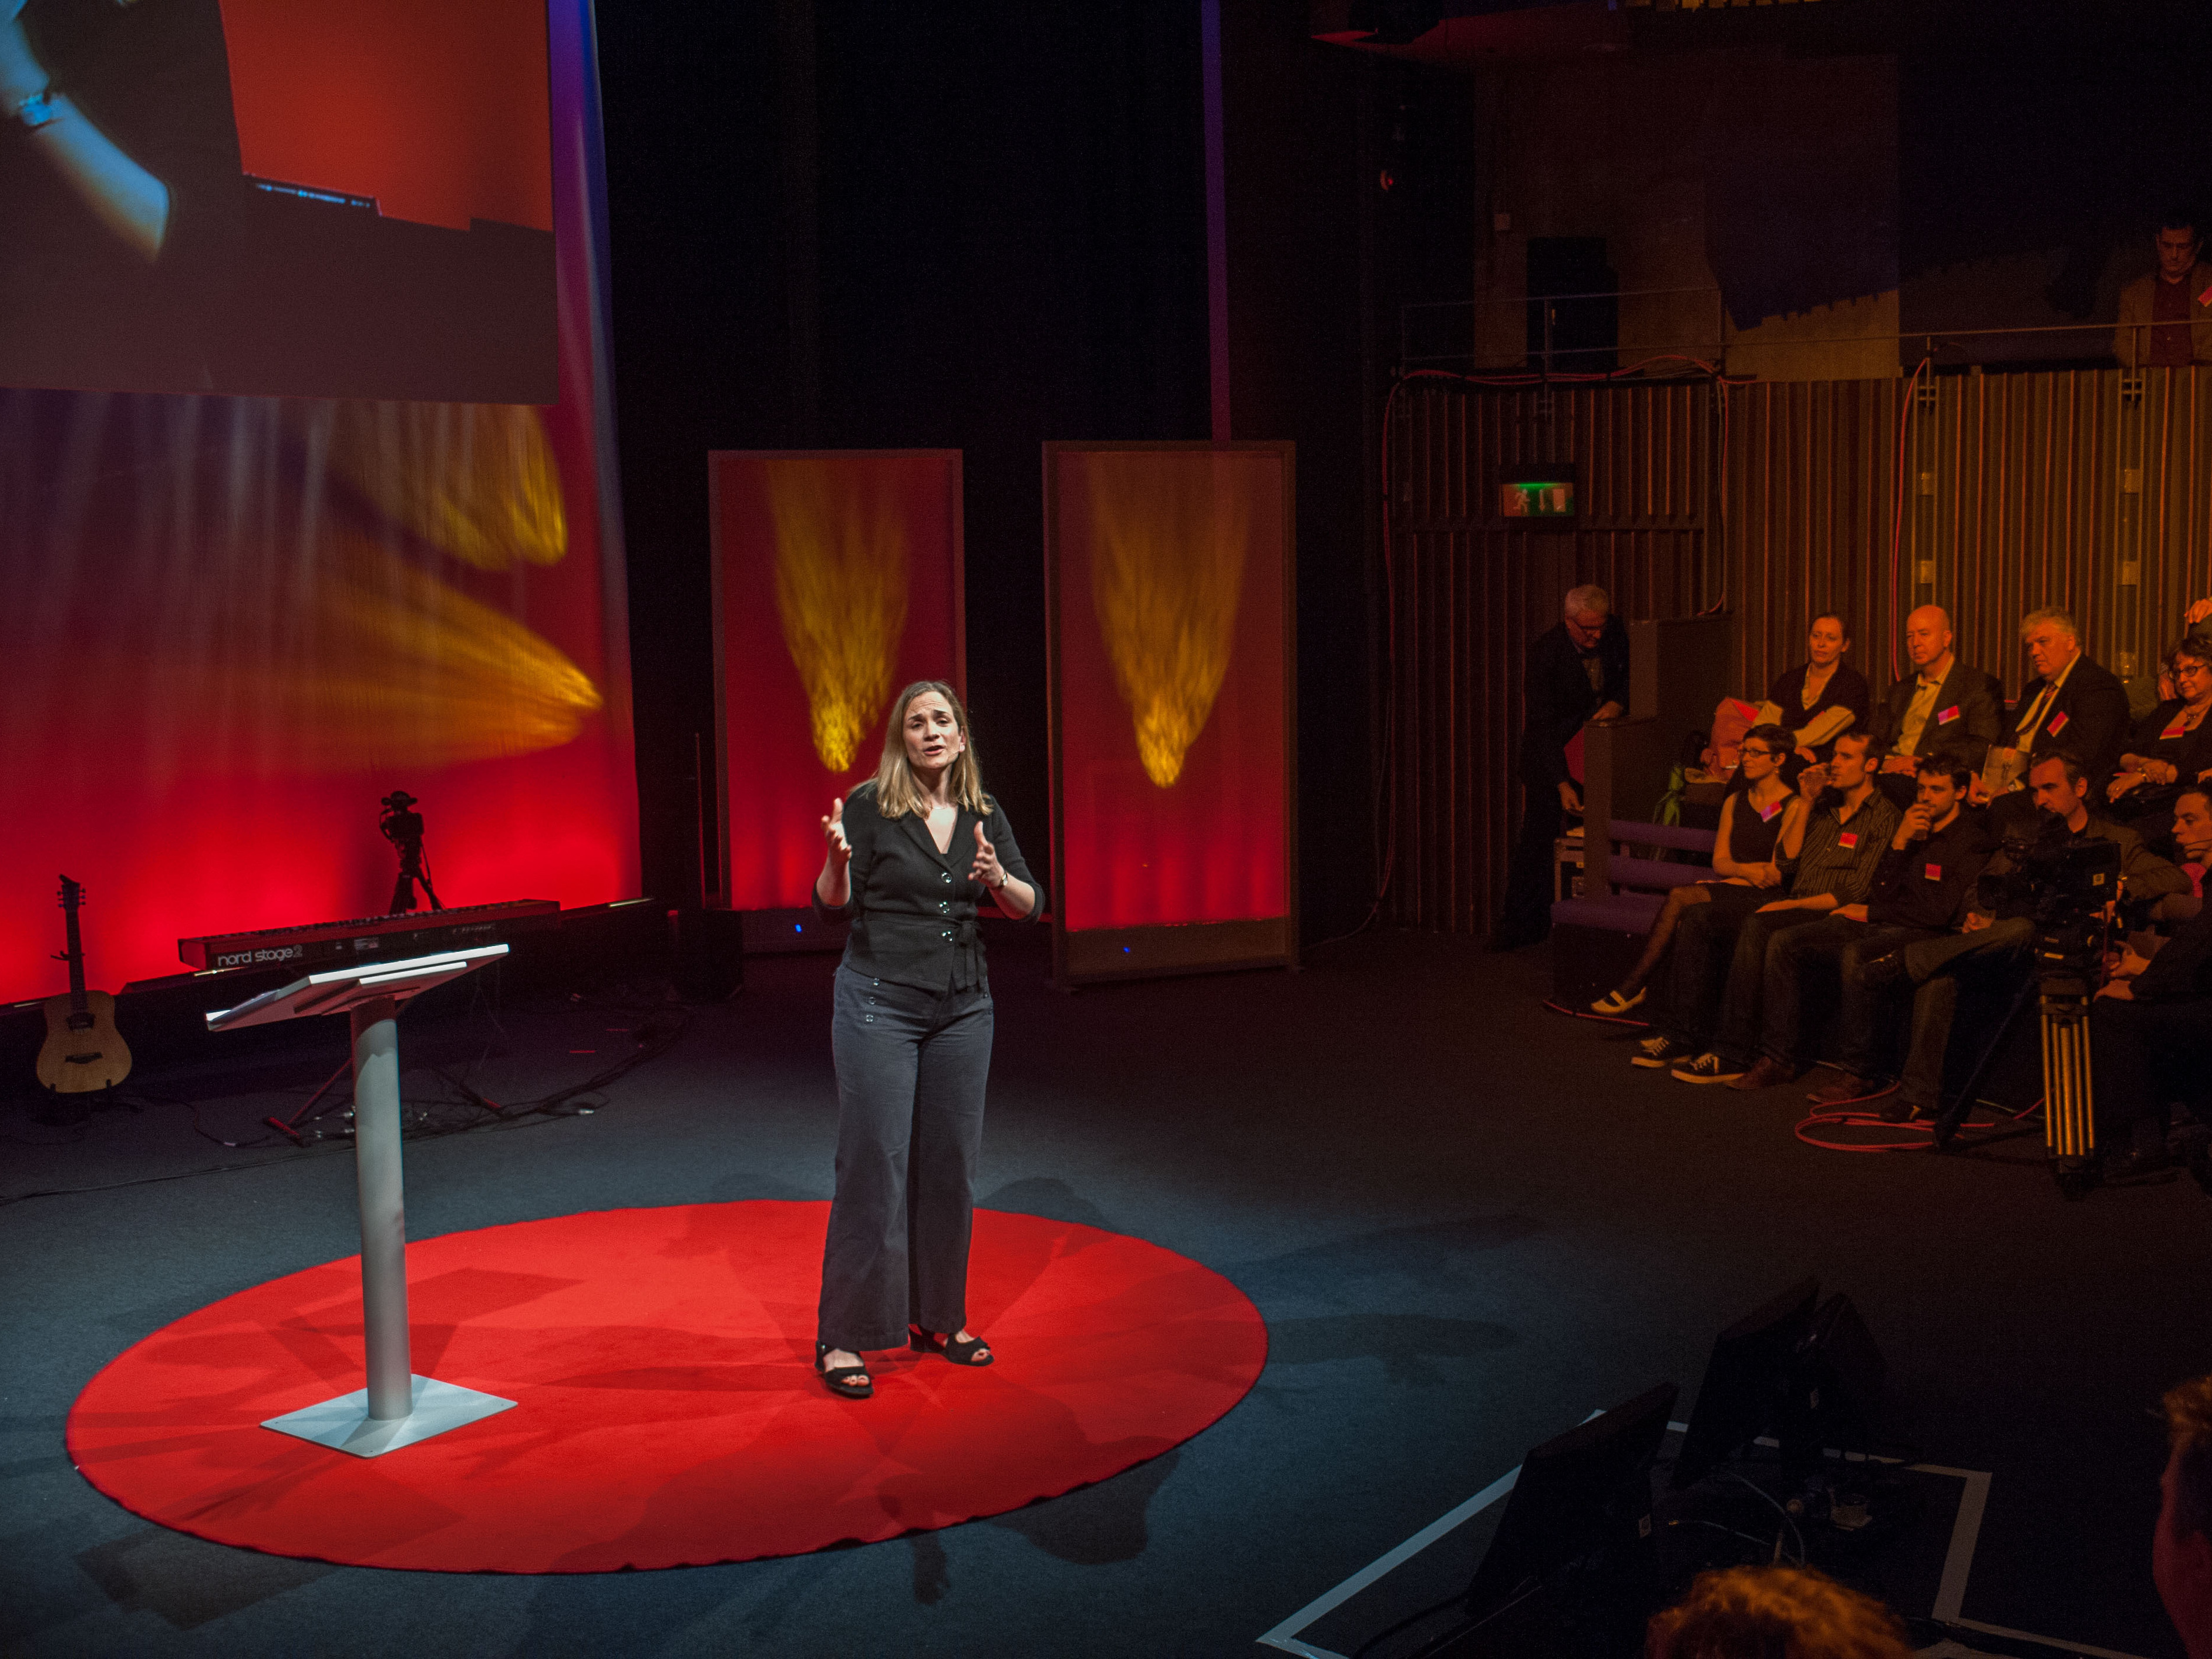 Author Tracy Chevalier speaking at the TED Salon in 2012.